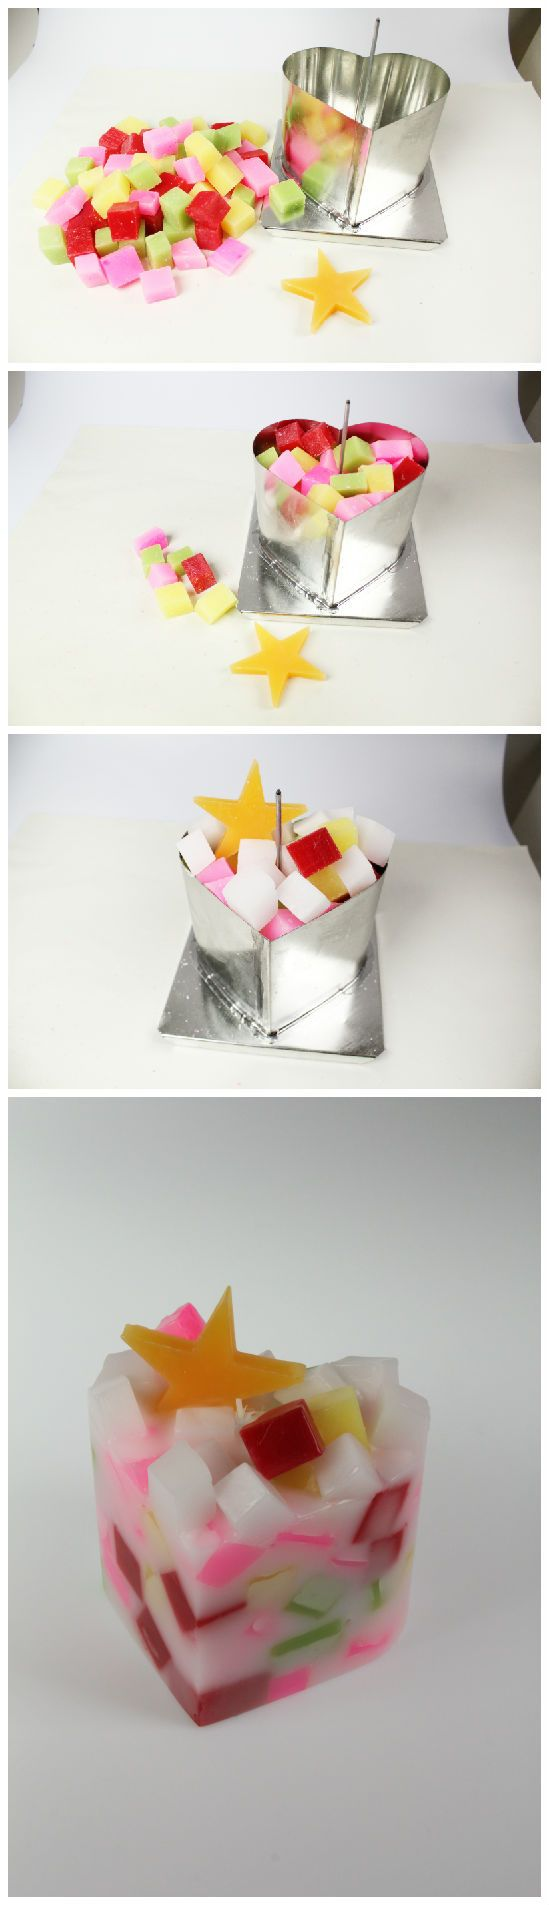 fun and easy candle to create! #diy #makemeaning #candle